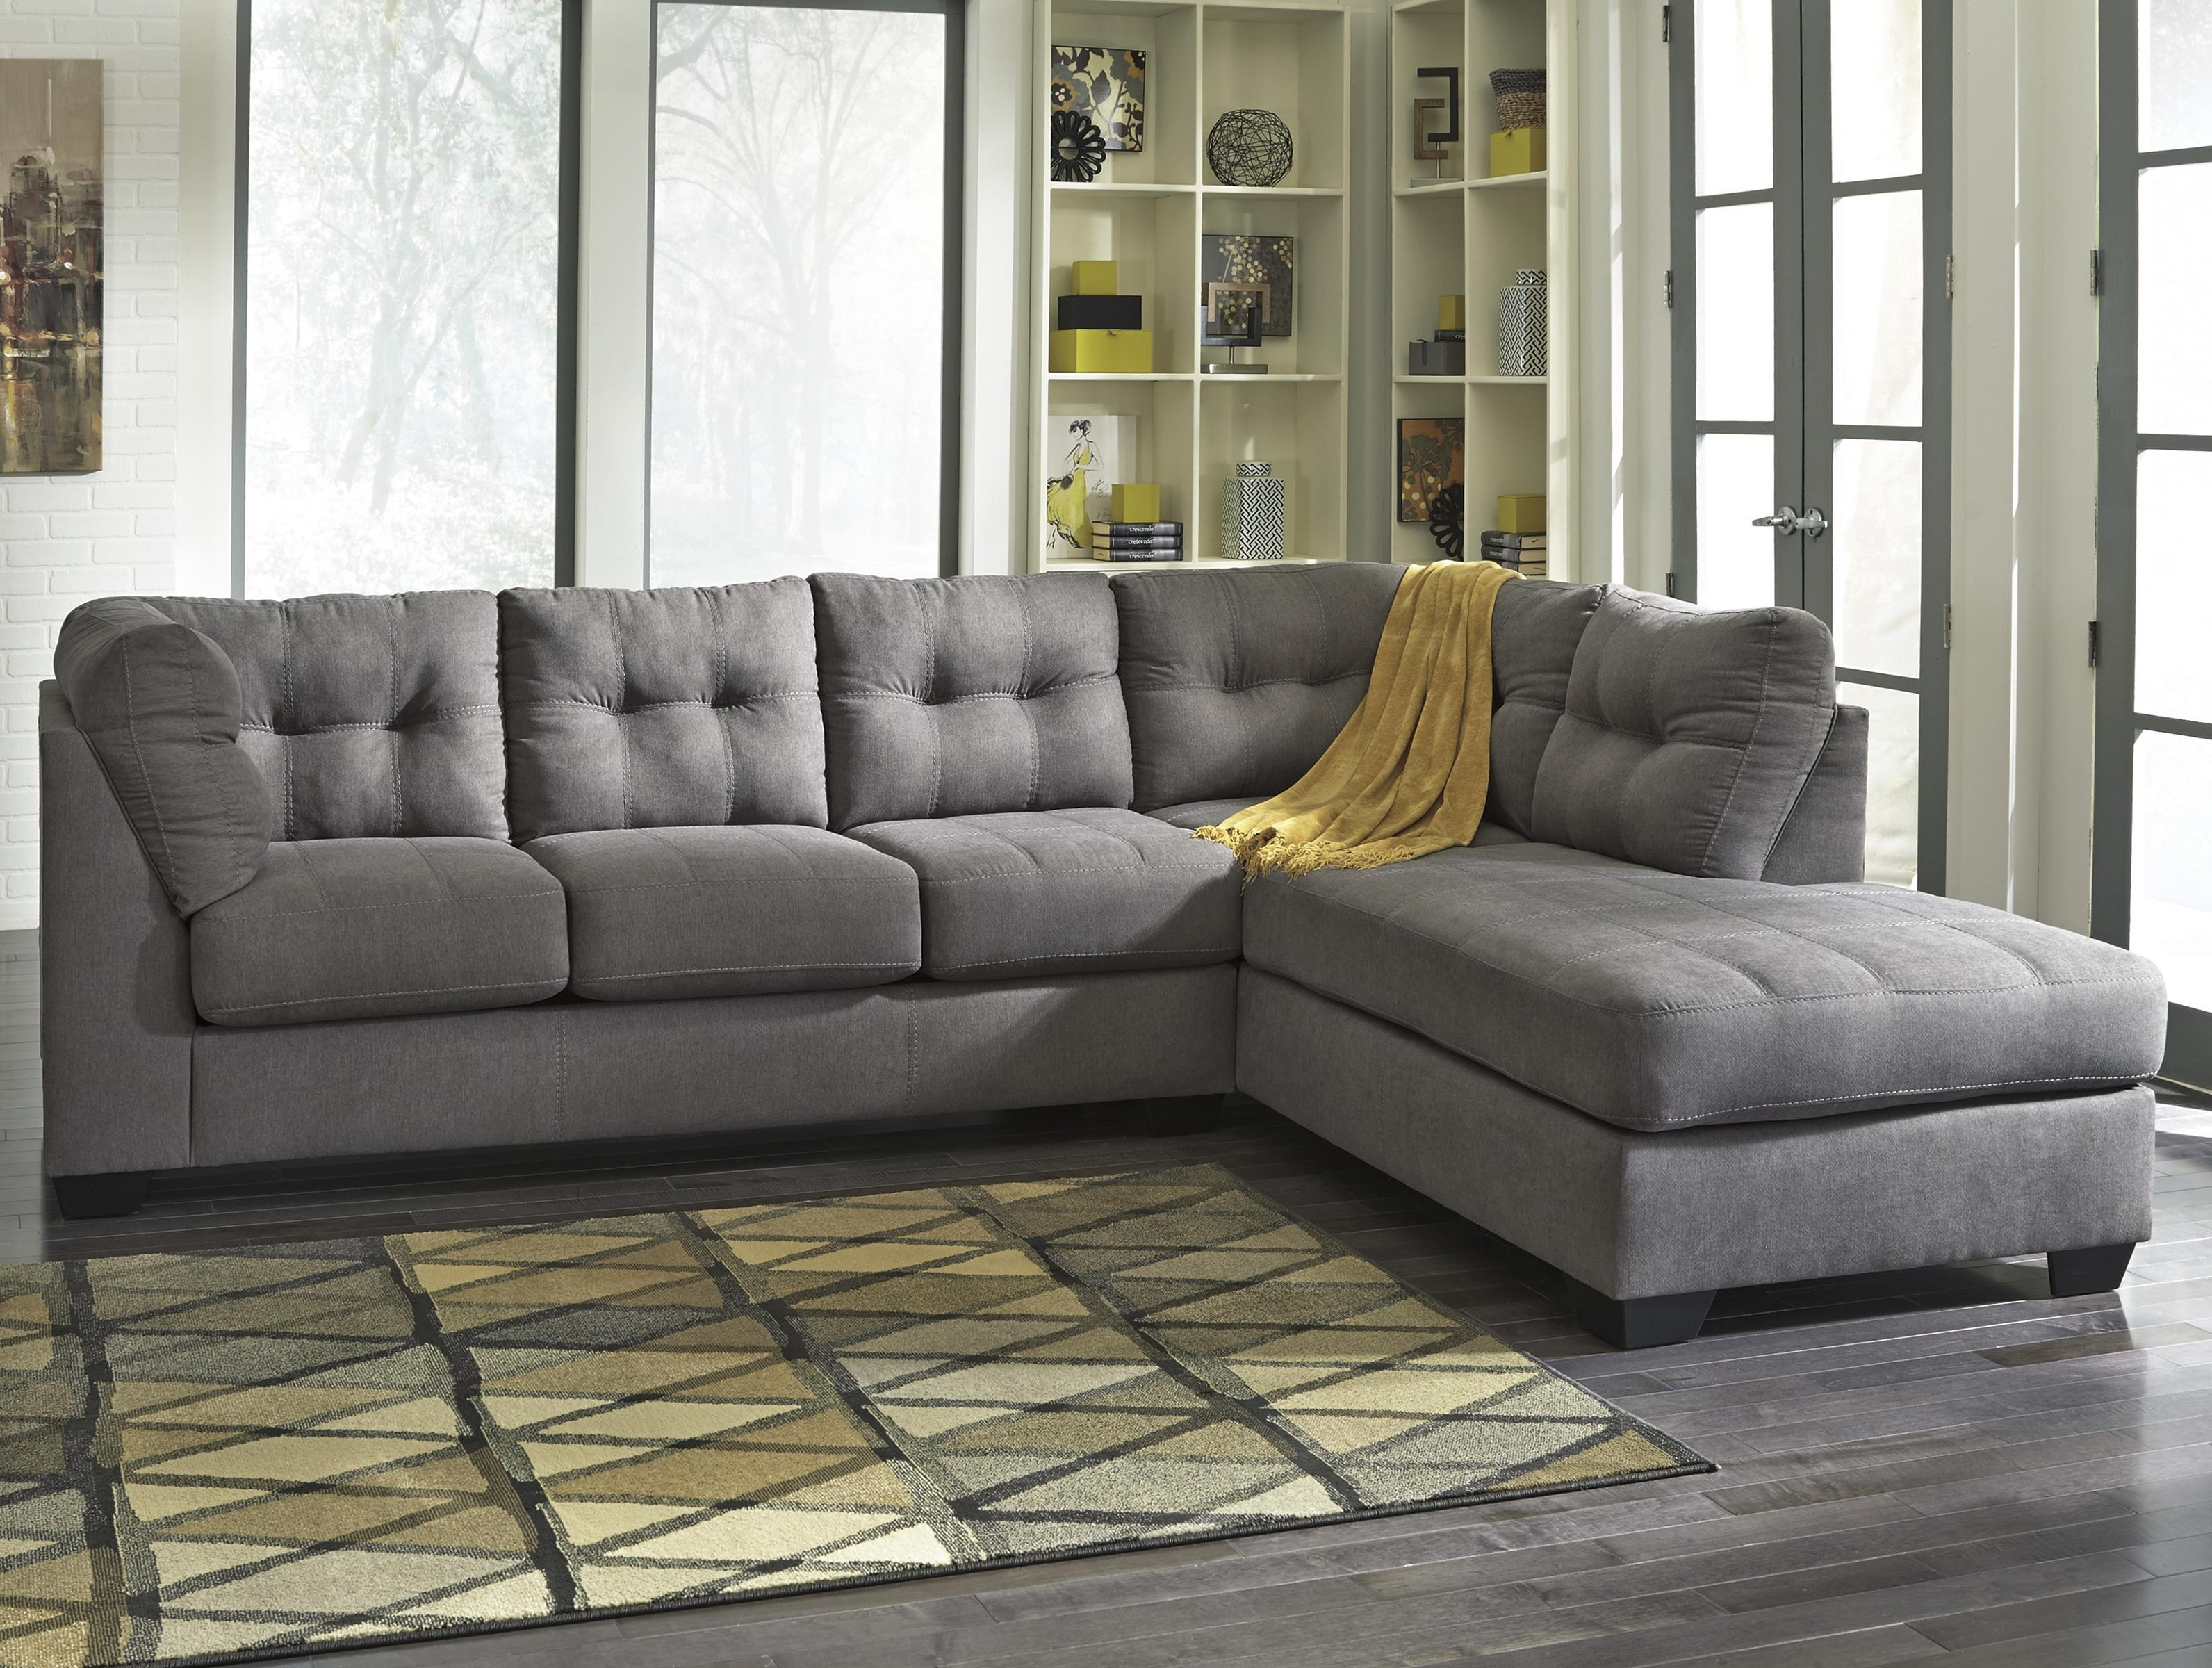 Well Known Choosing 2 Piece Sectional Sofa – Elites Home Decor Intended For Sectional Sofas That Can Be Rearranged (View 19 of 20)